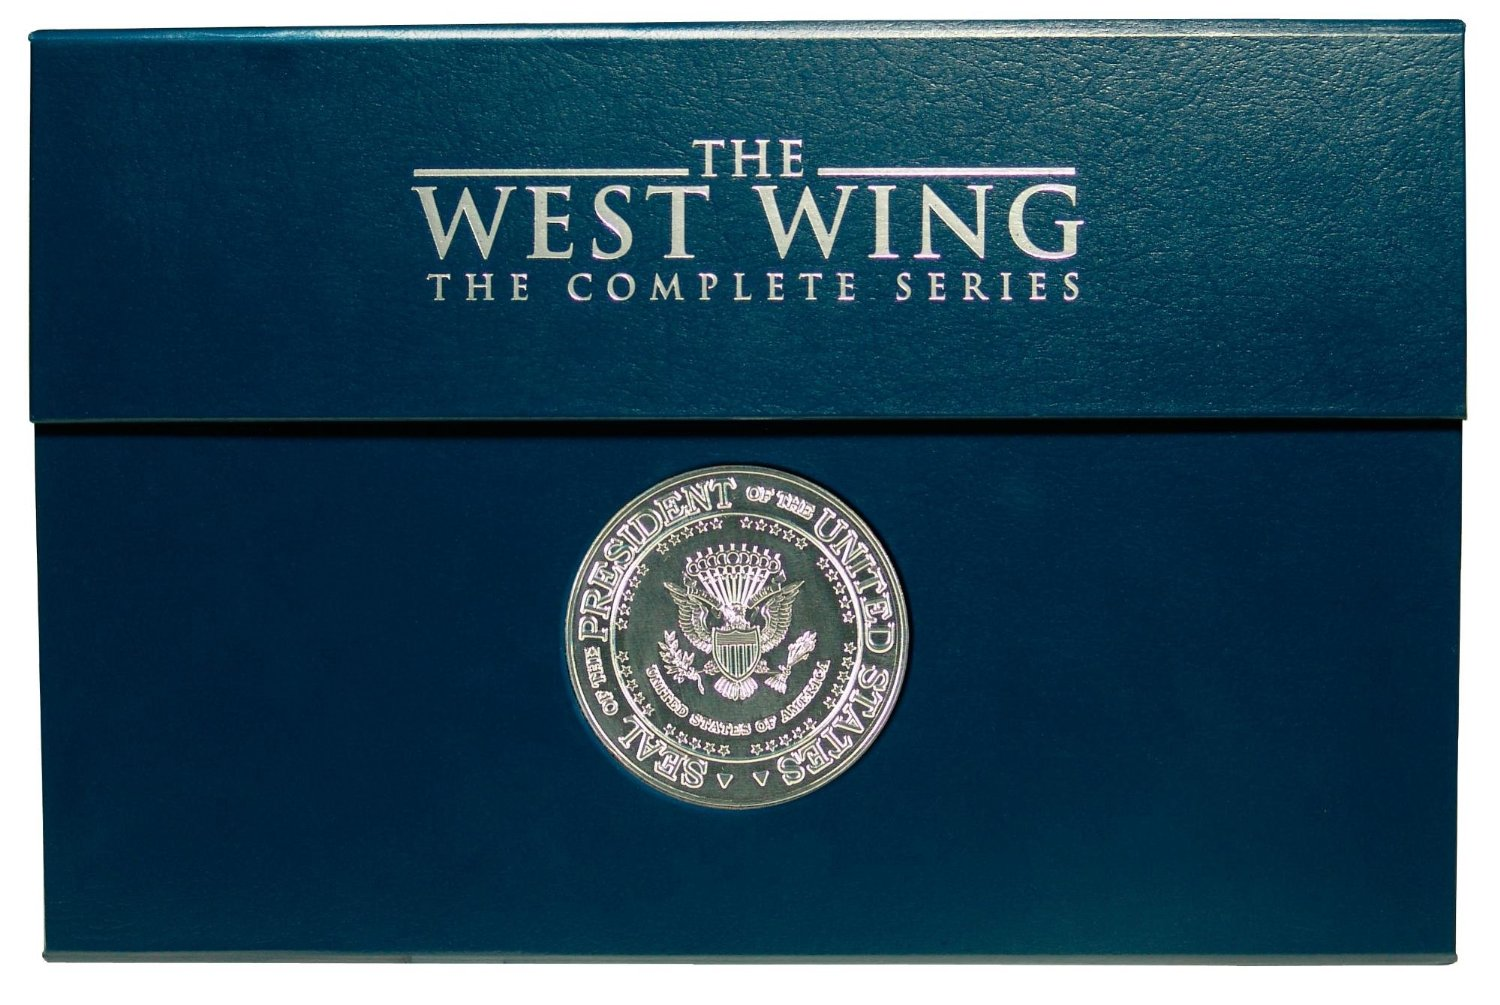 coupon stl the west wing the complete series collection 80